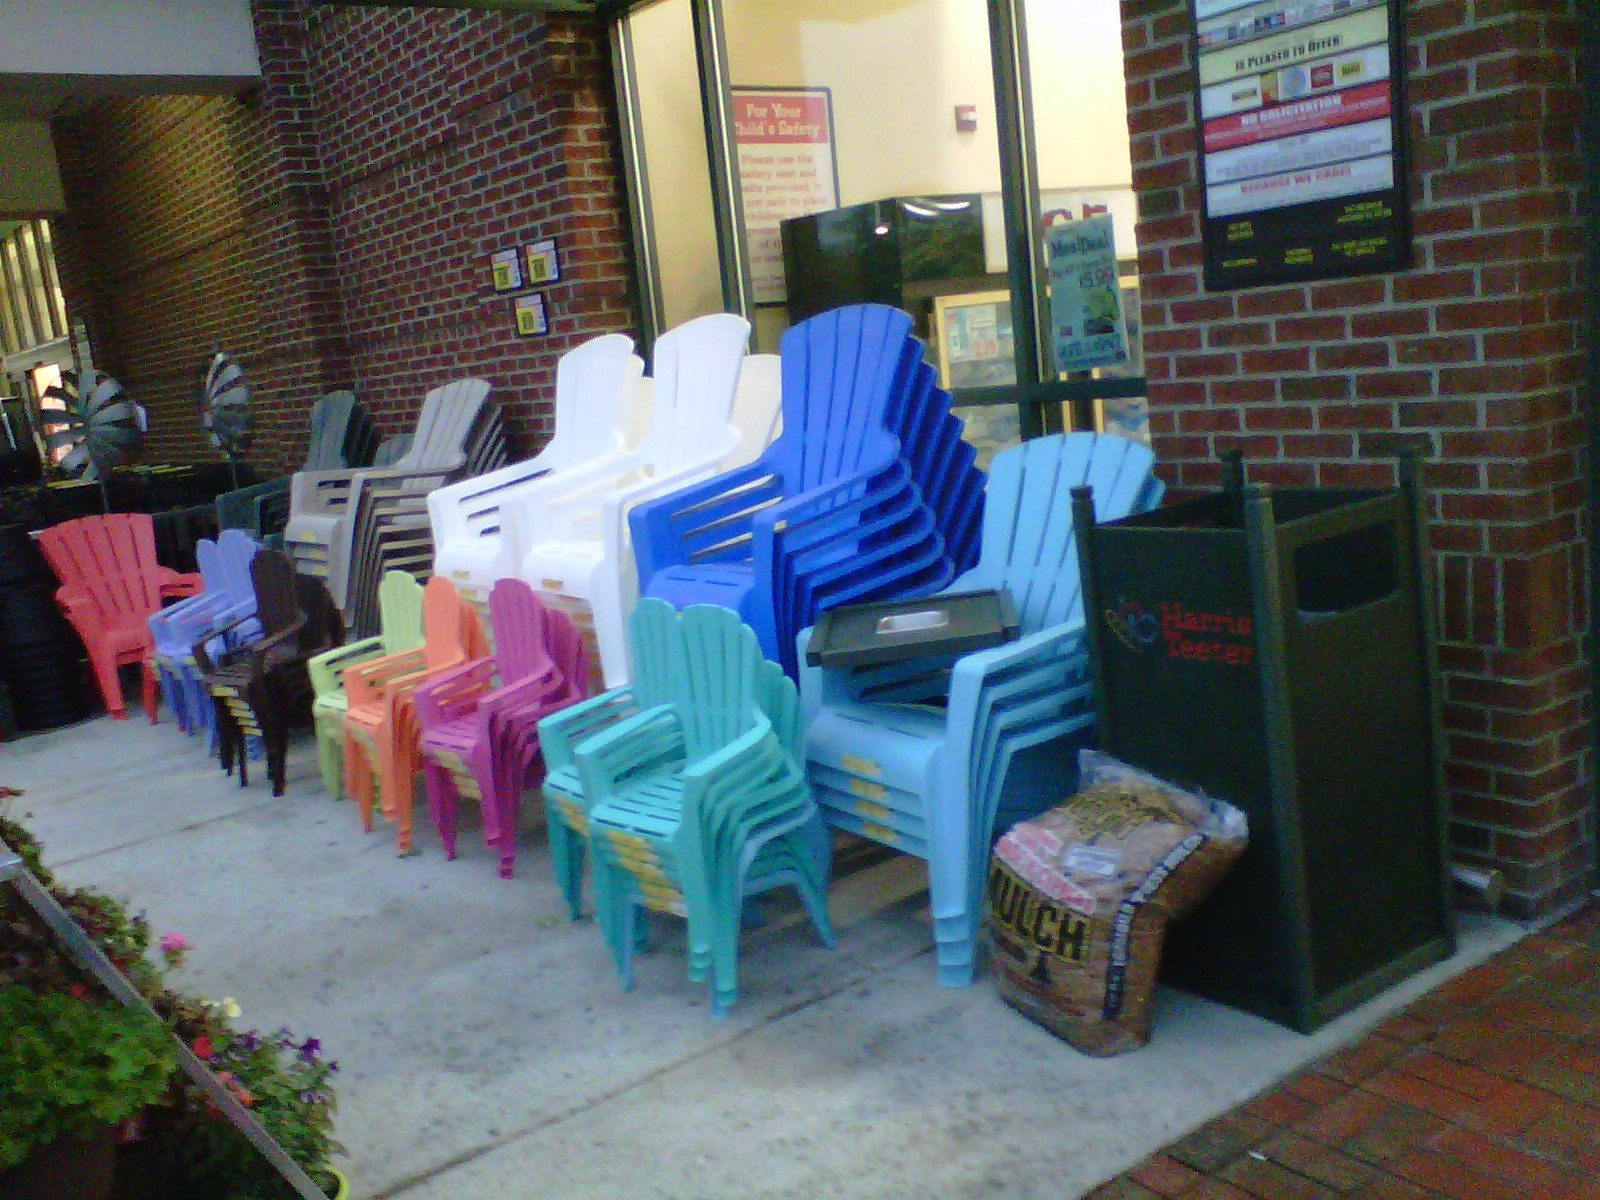 Delightful Adirondack Patio Chairs